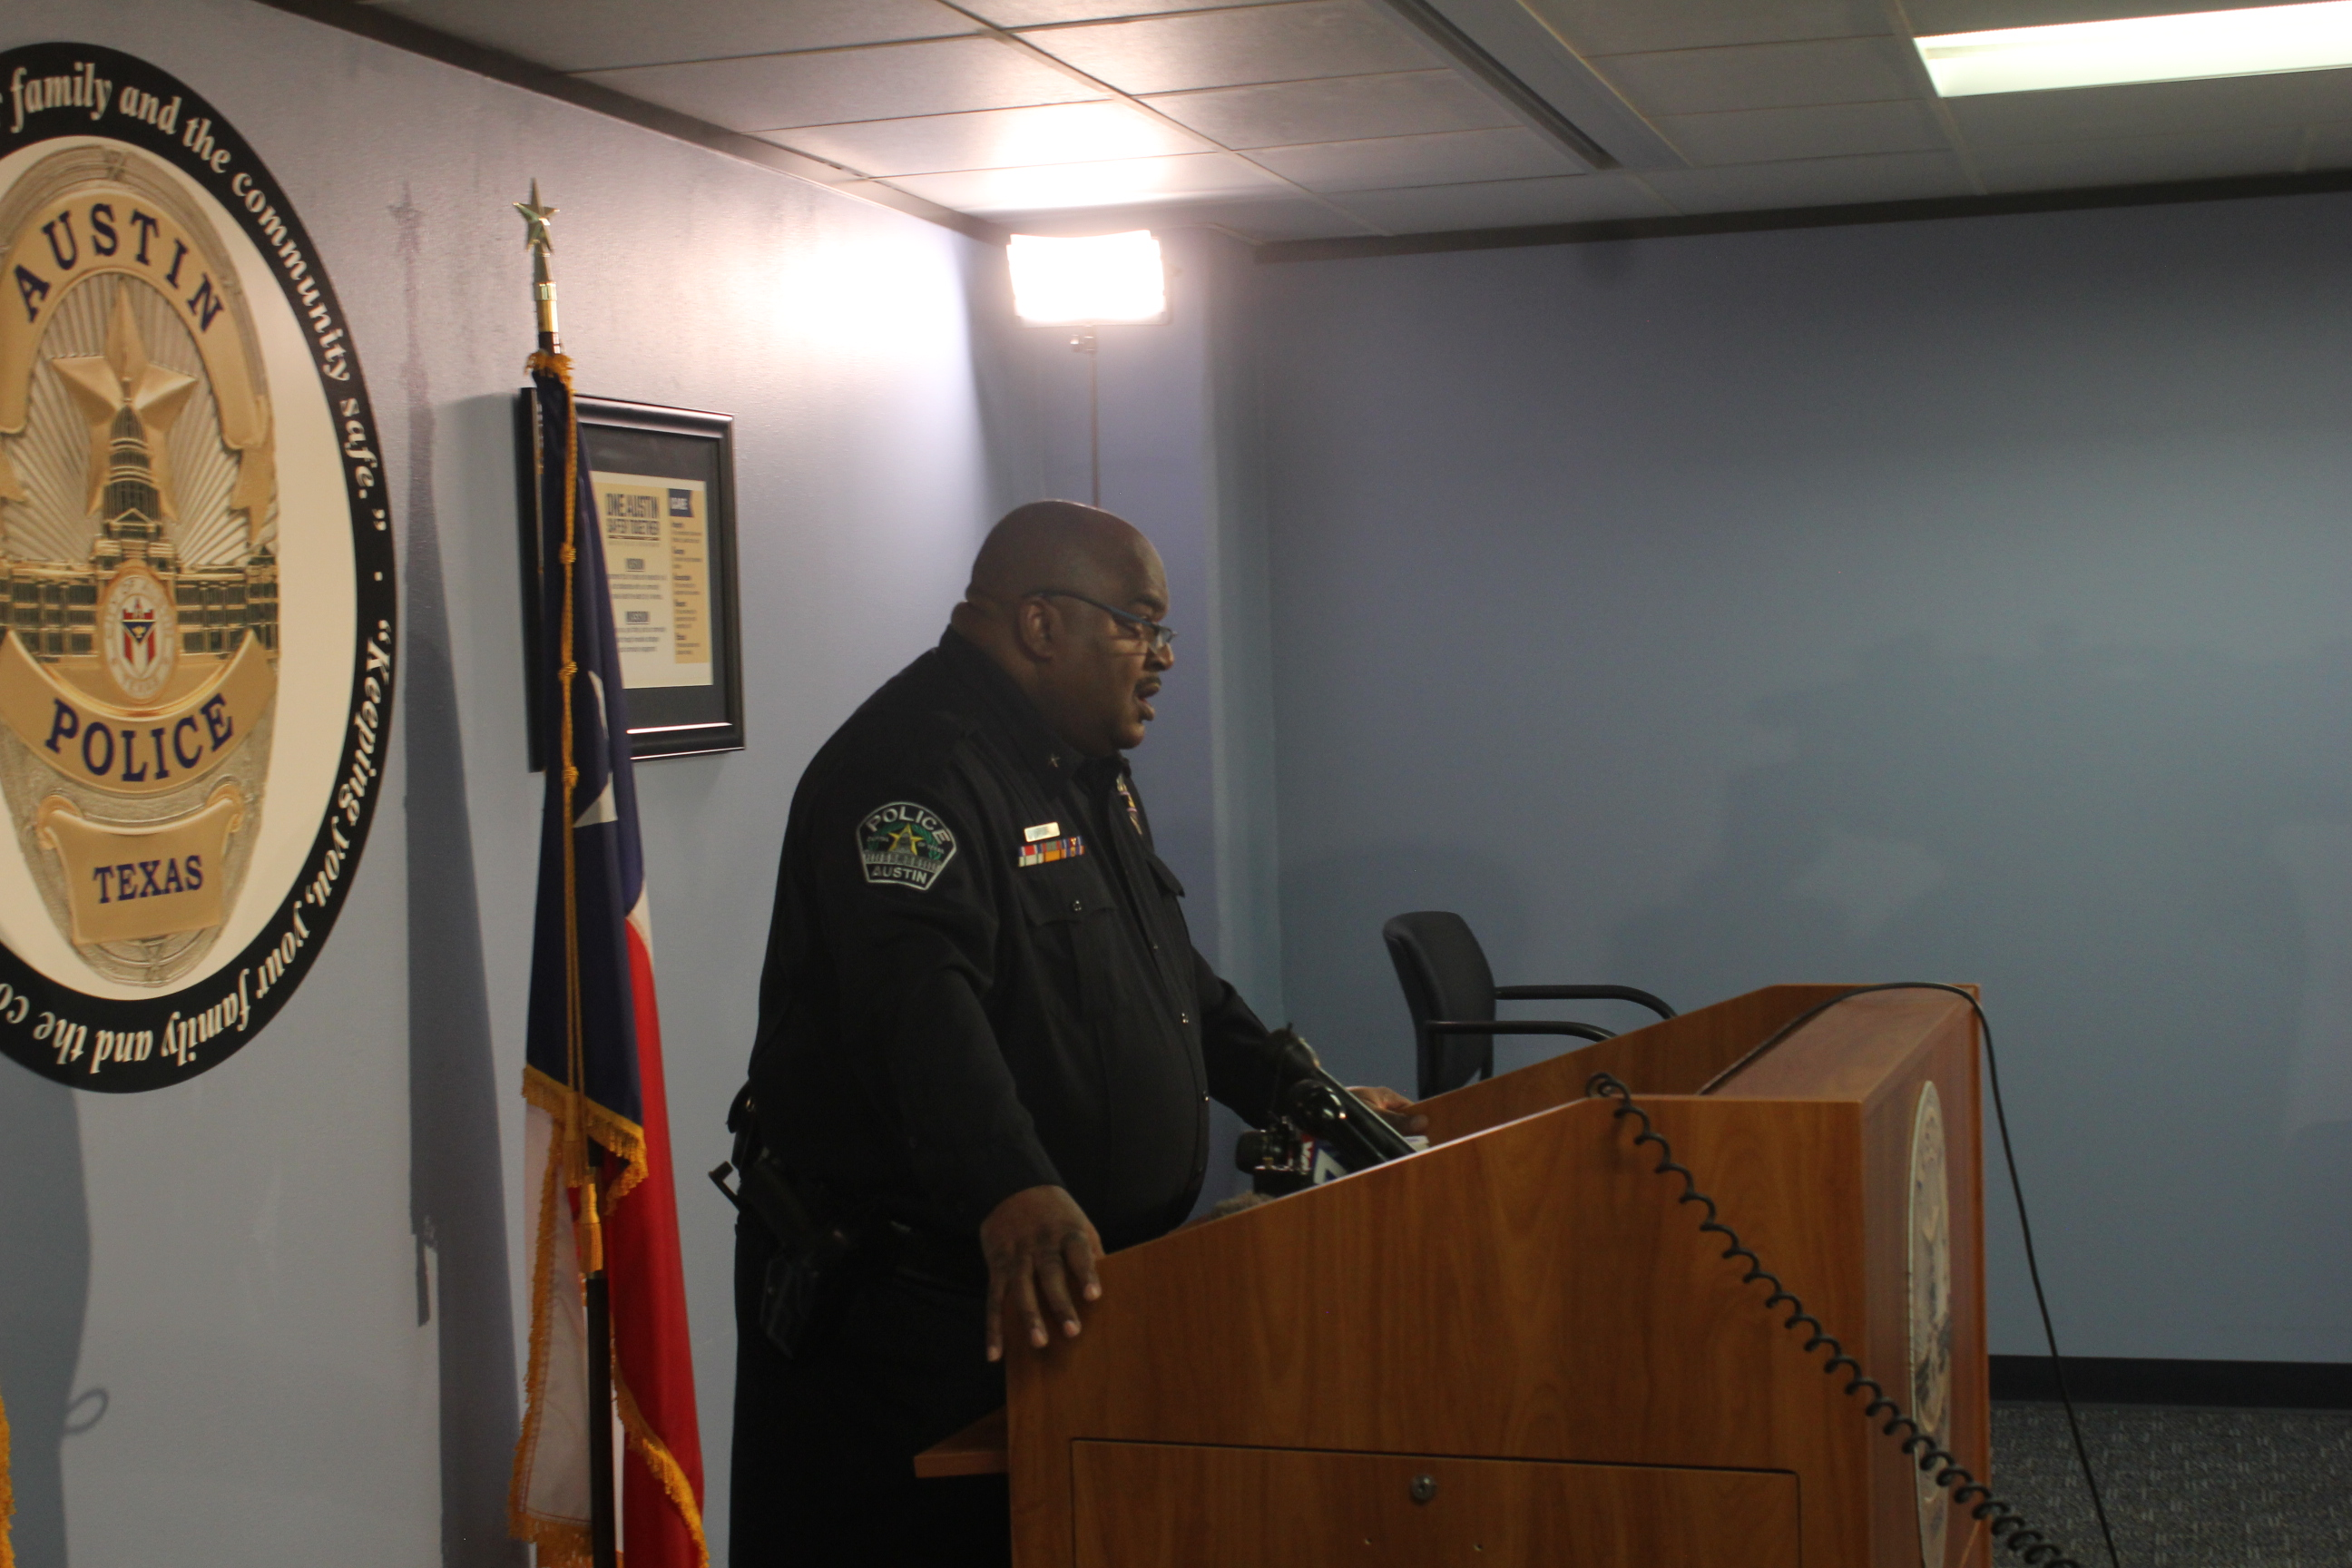 APD's Cmdr. Troy Officer speaks to the press about a new warrant regarding child sexual assault allegations against Defense Distributed founder Cody Wilson.